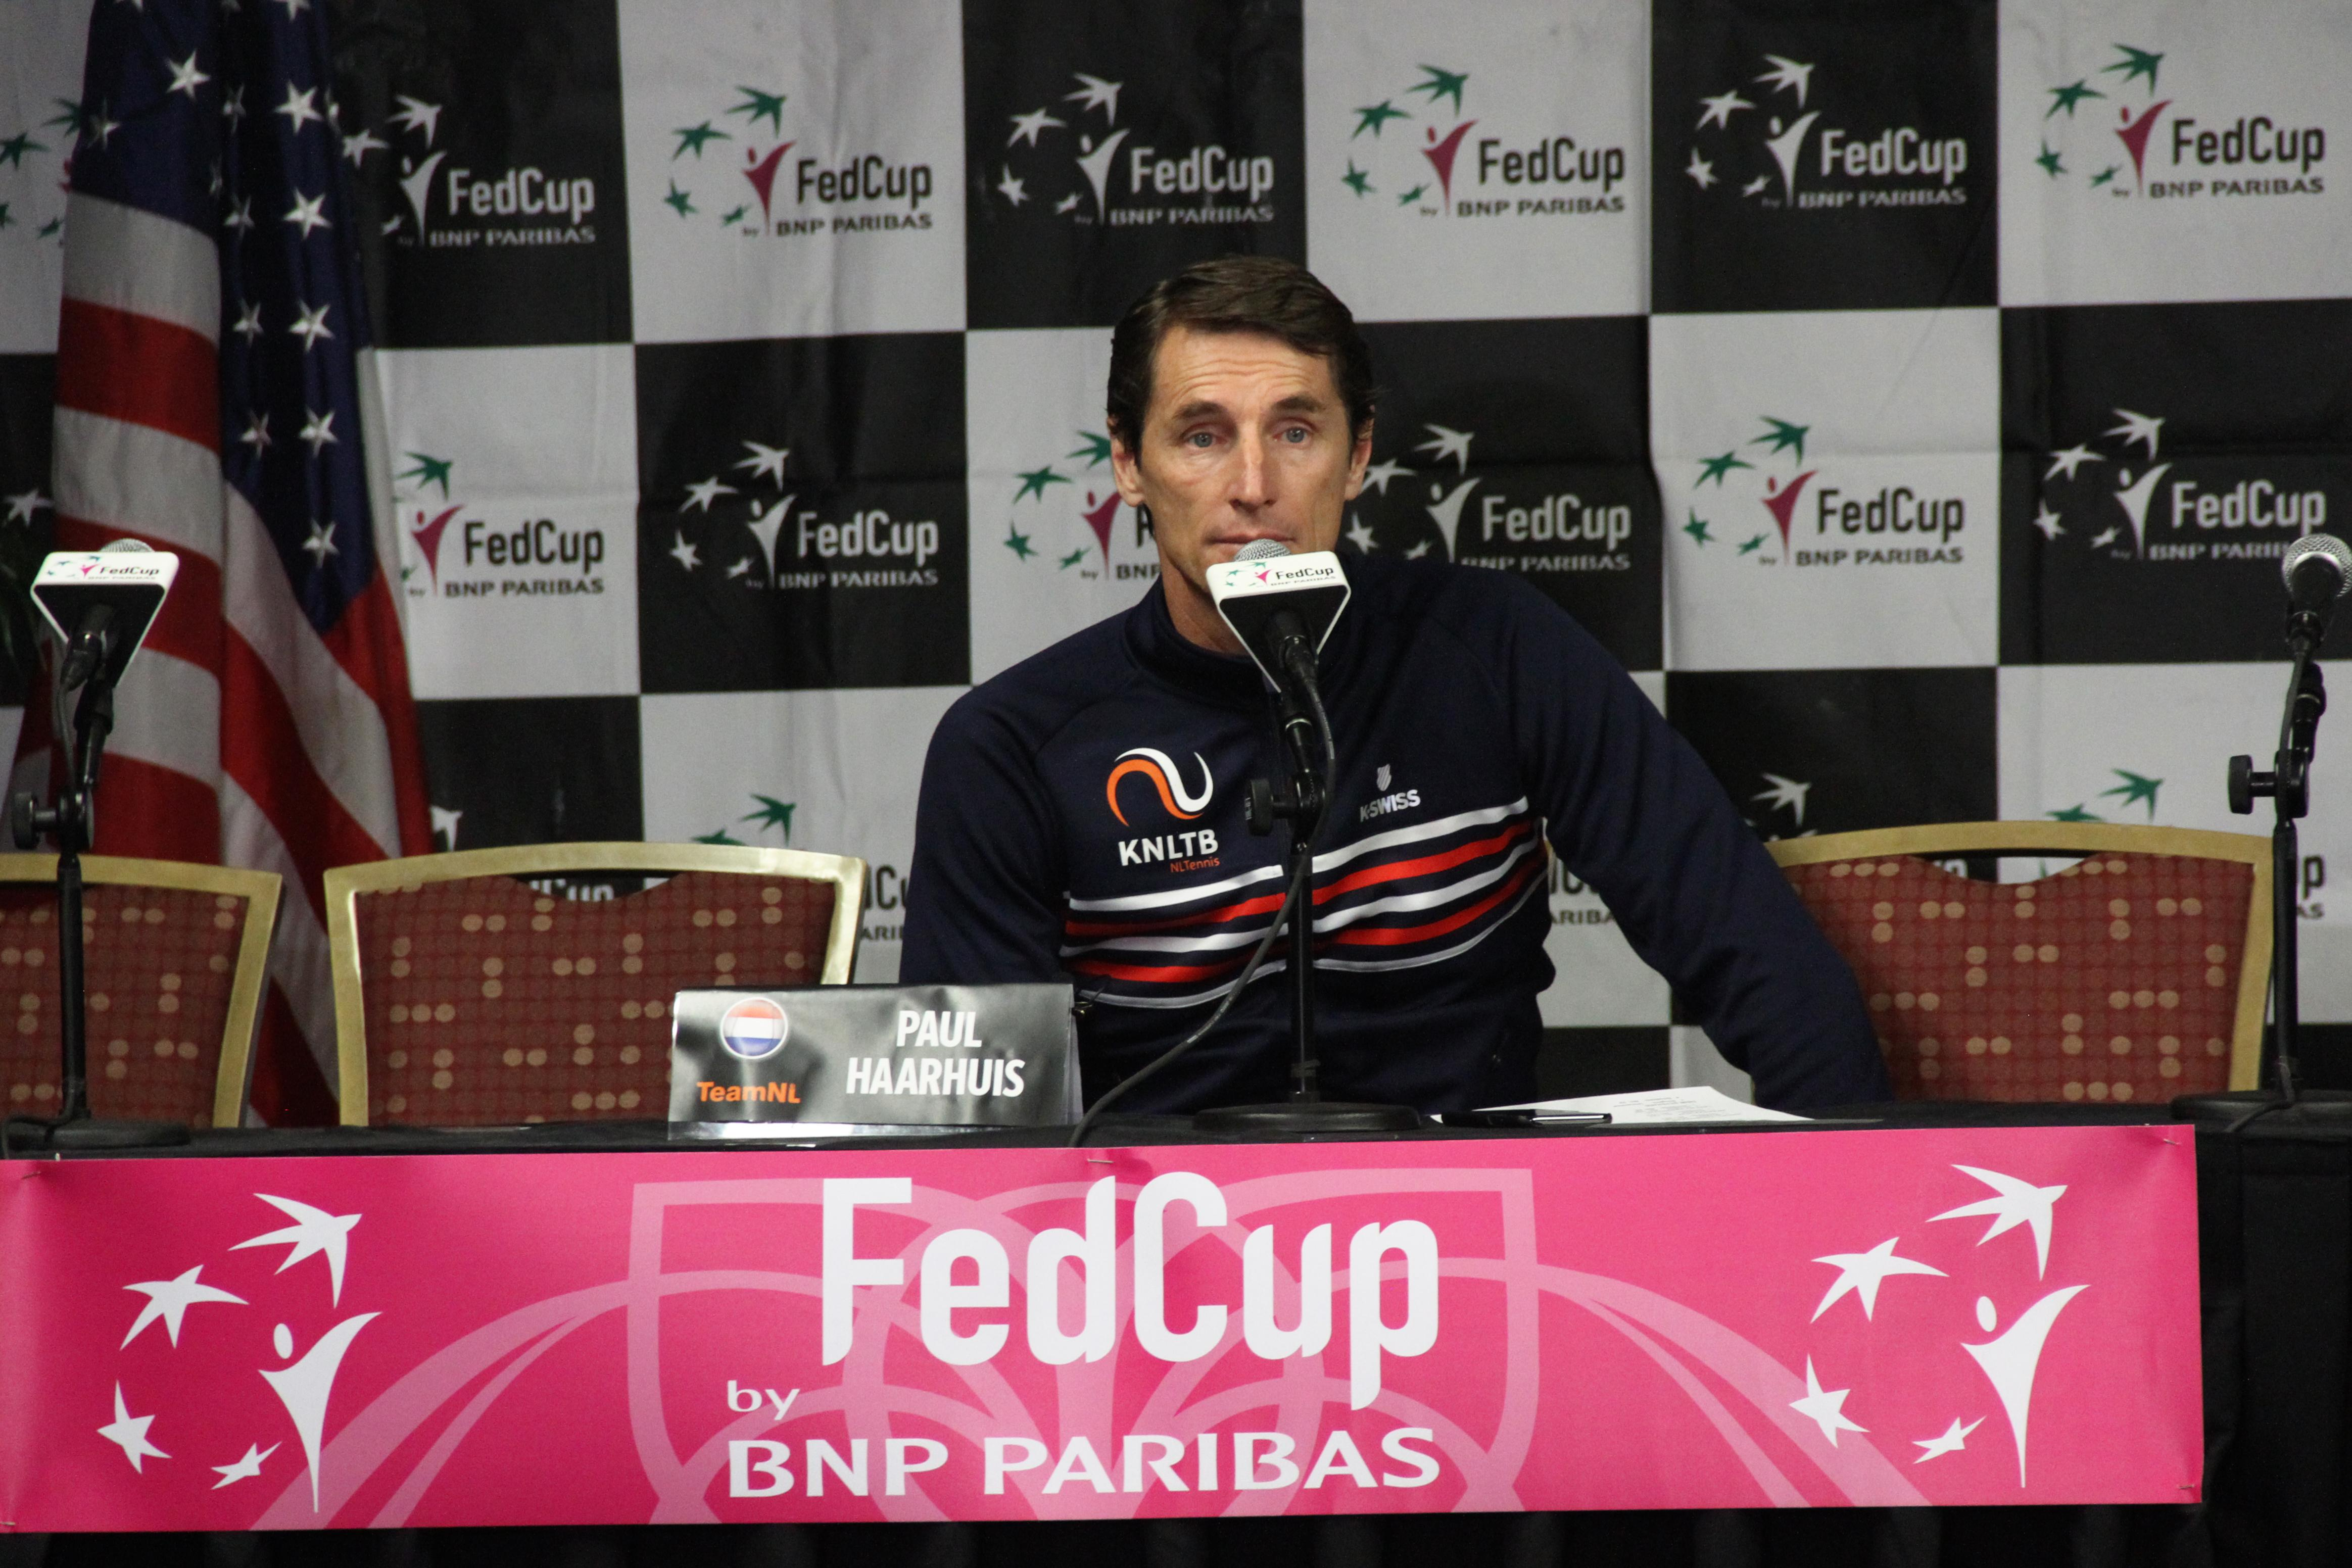 Netherlands coach Paul Haarhuis talks to the media on Feb. 7, 2018, ahead of the Fed Cup. (Photo credit: WLOS Staff)